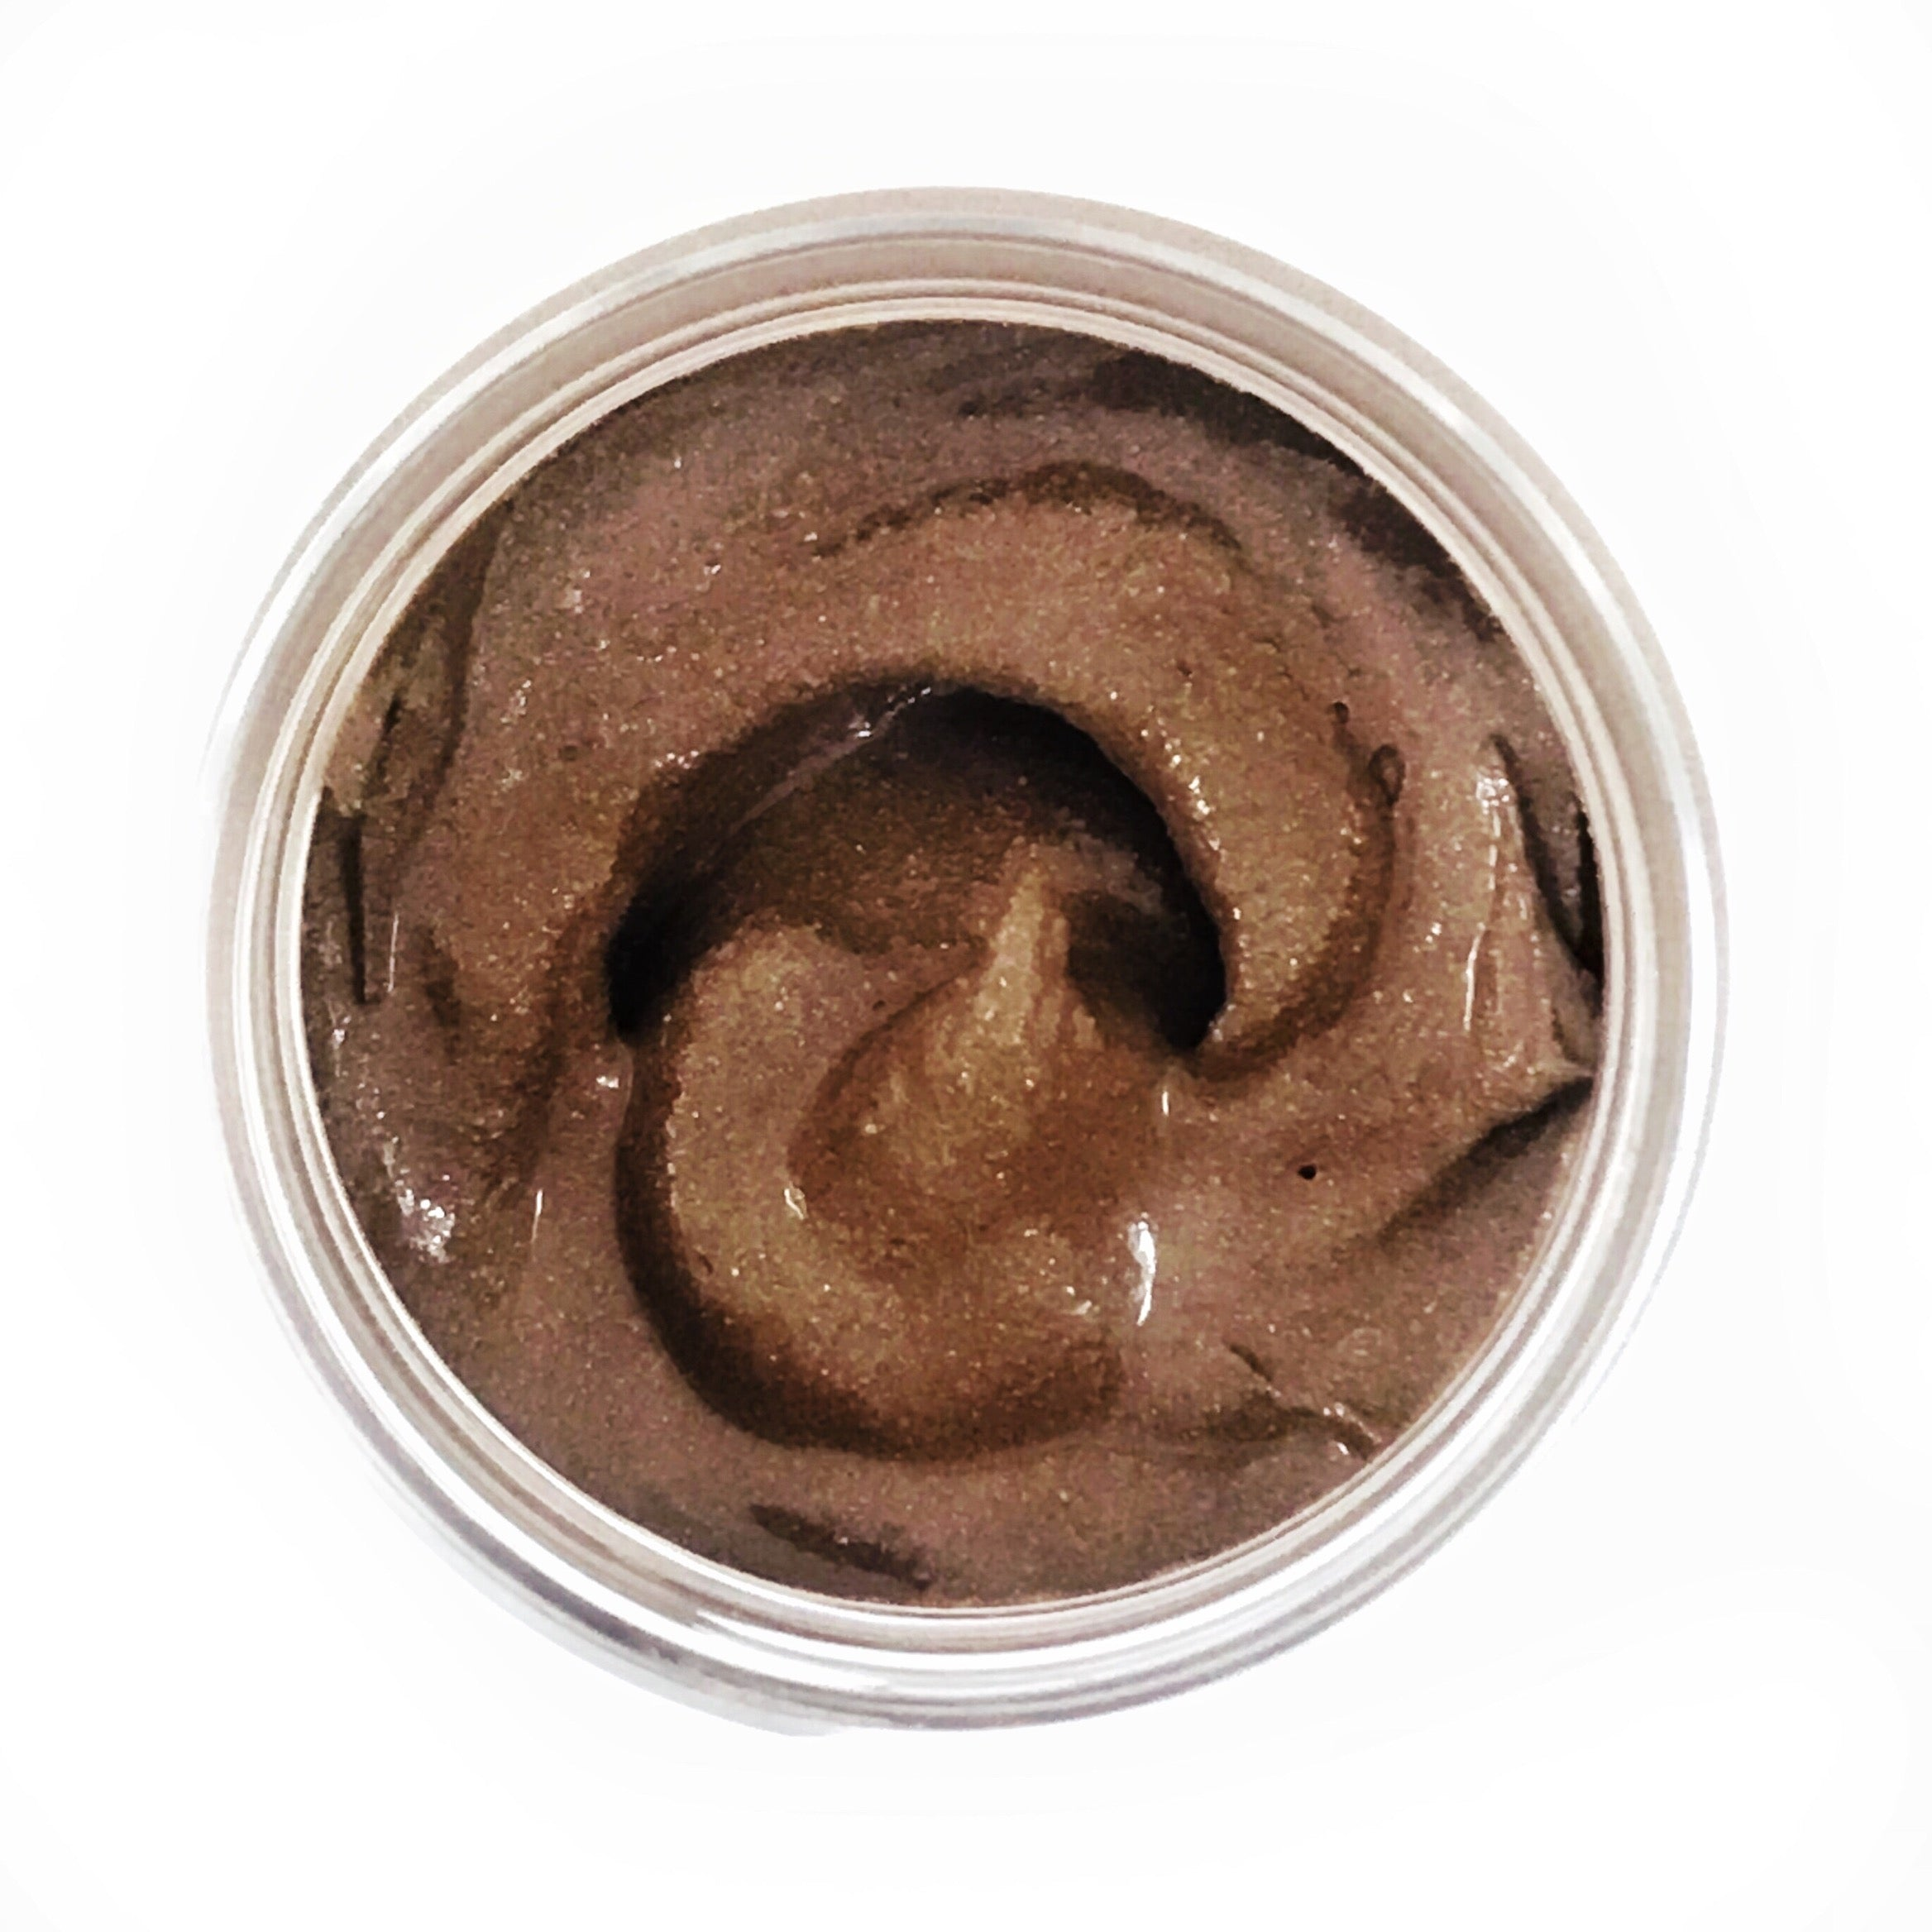 Chocolate Mint Facial Mask